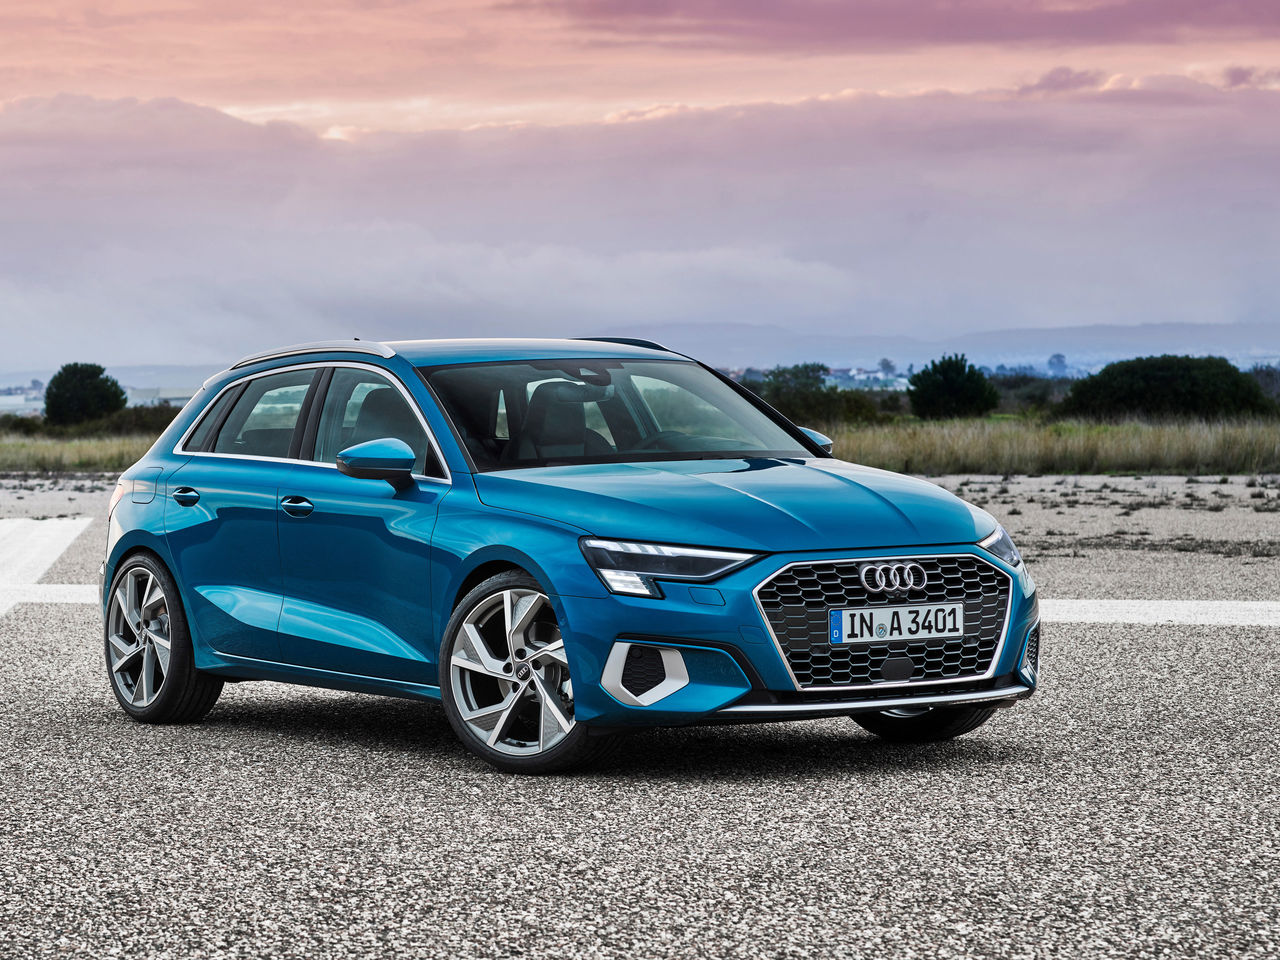 Why Wouldn't My Audi Start? – A Few Issues That You Might Face